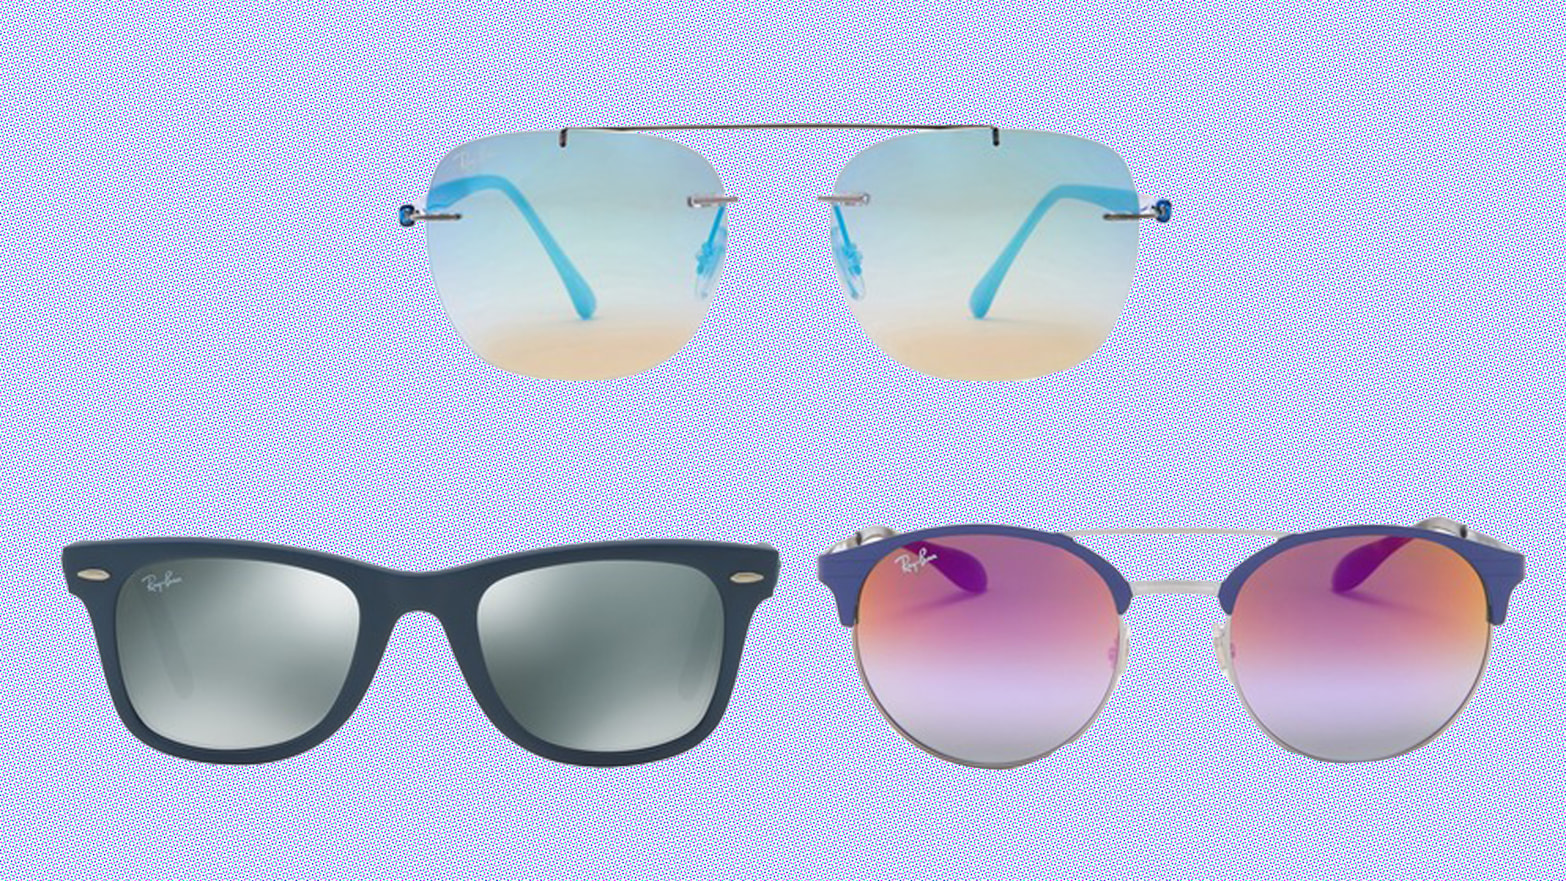 Ray-Ban Sunglasses Are Up to 50% Off At Nordstrom Rack Right Now